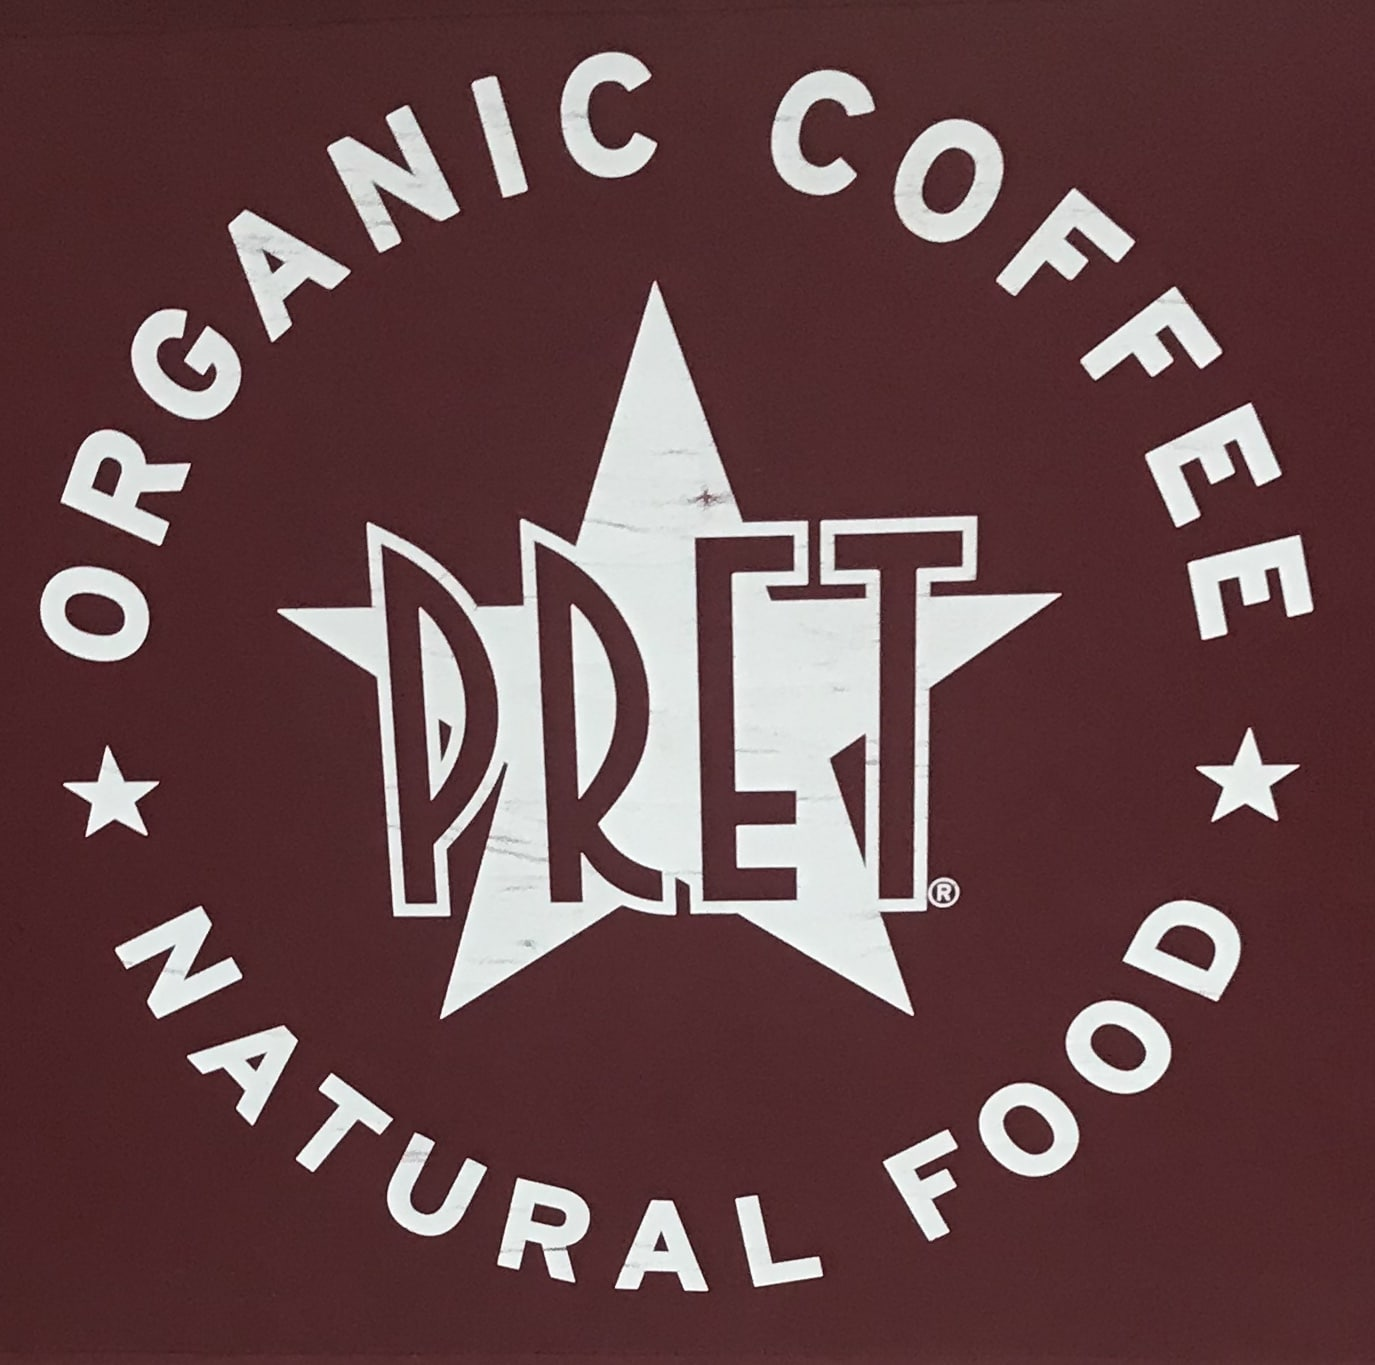 Better late than never for Pret A Manger - what can brands learn from their reputation crisis?